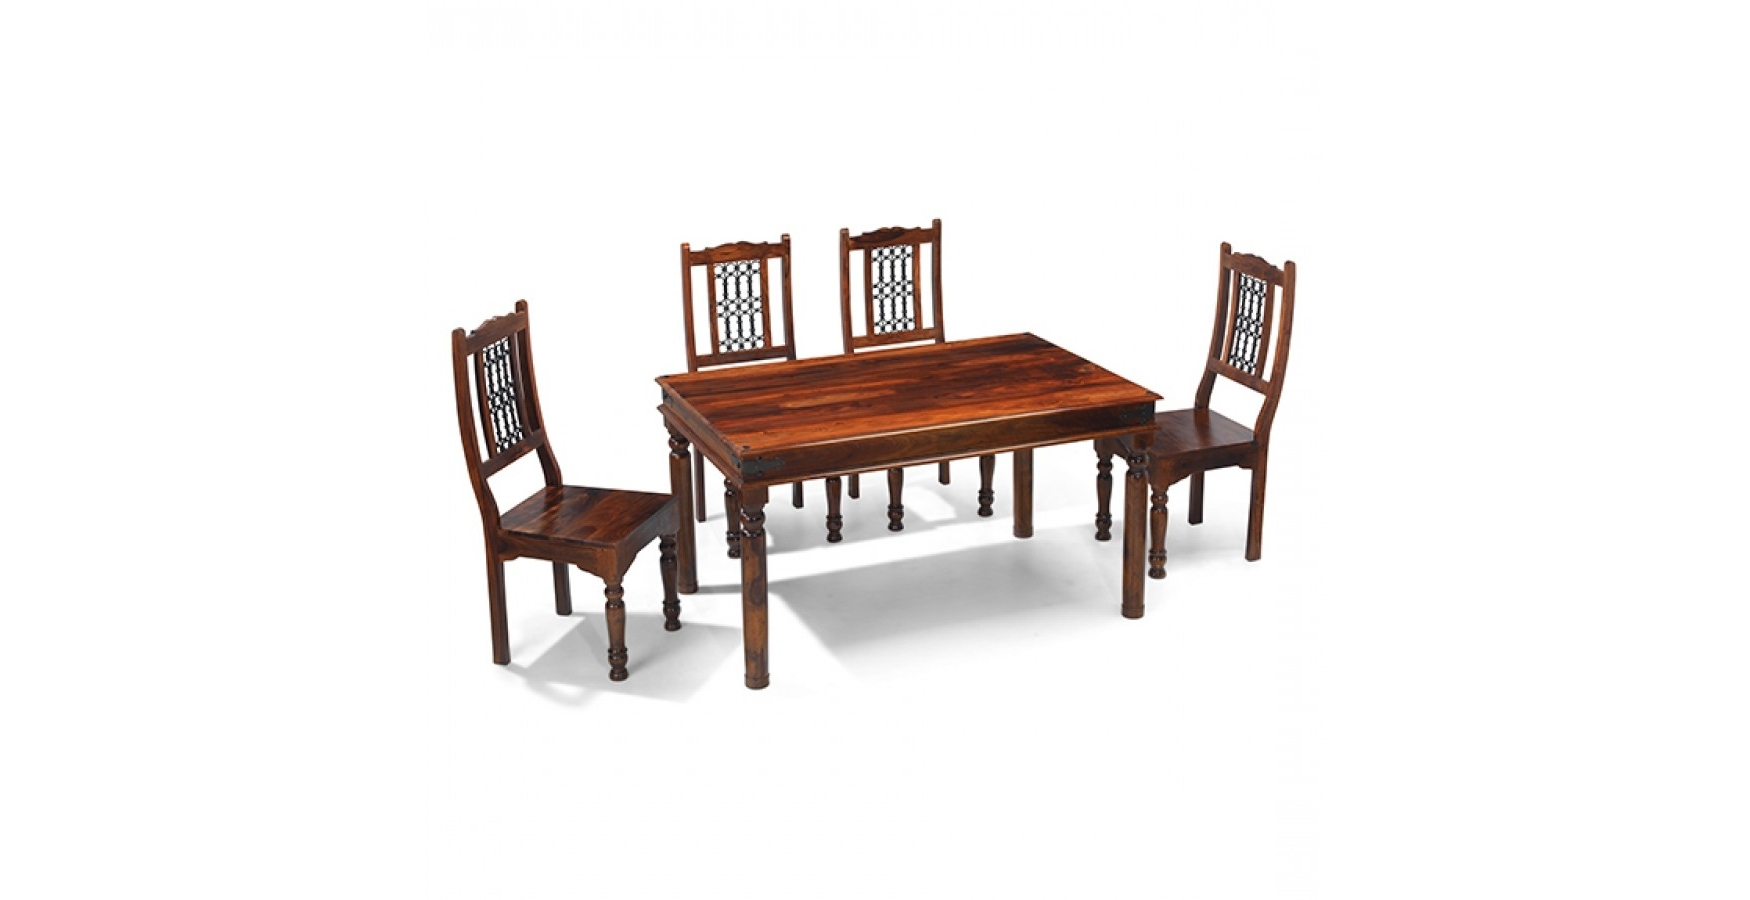 Jali Sheesham 120 Cm Thakat Dining Table And 4 Chairs – Lifestyle For Fashionable Sheesham Dining Tables And 4 Chairs (View 16 of 25)